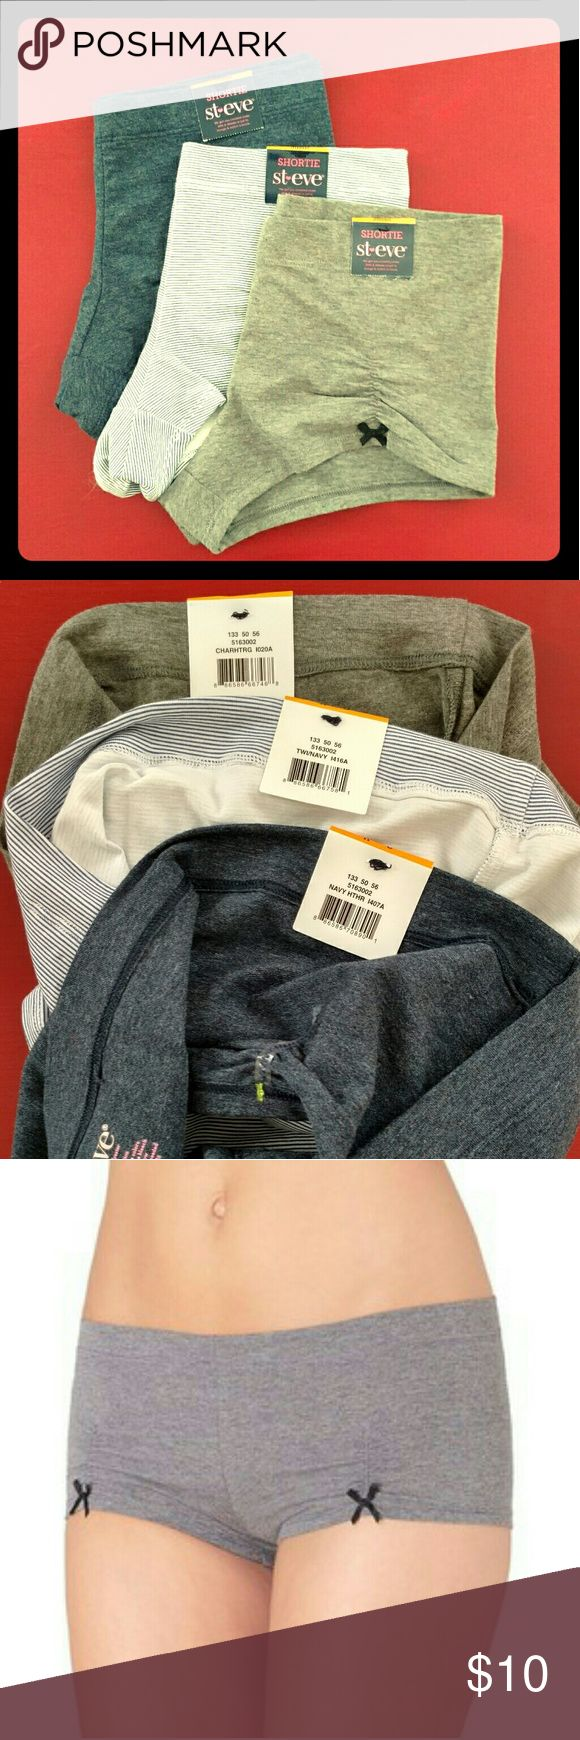 St. Eve Shortie - Boyshorts - set of 3 - NWT NWT St.Eve Shorties - set of three boyshorts. Colors : heathered gray , navy/white striped , heathered navy. Soft and comfortable! Cute bow accents on hem. Size S. All three are included together. St. Eve Intimates & Sleepwear Panties